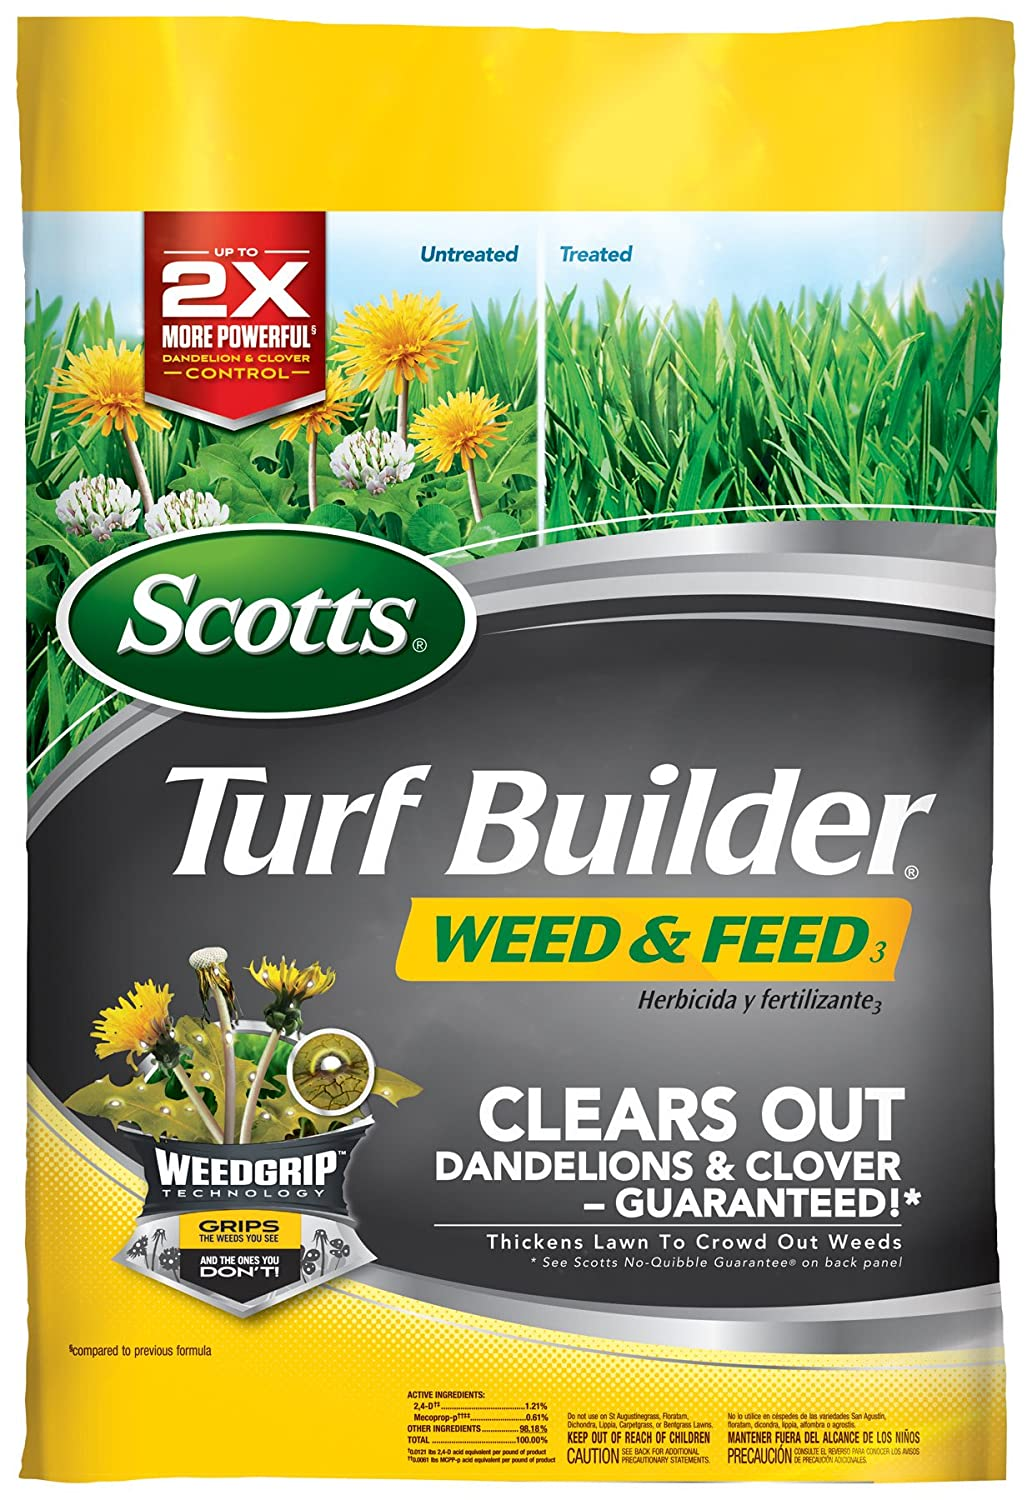 Scotts- Turf Builder Dandelion and Clover Control